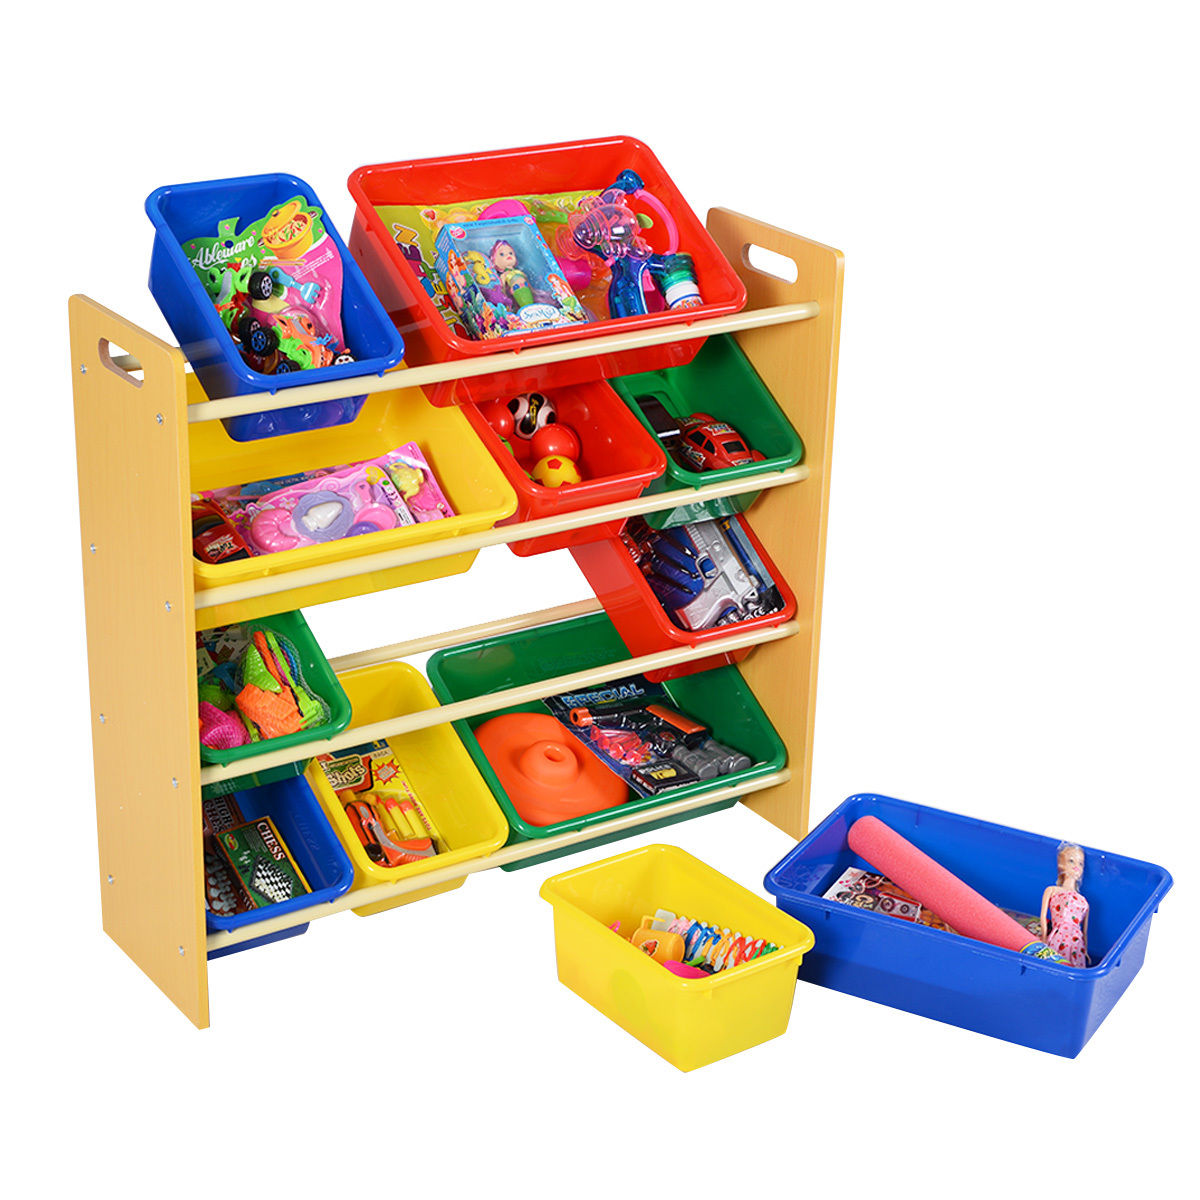 Charmant Toy Bins Organizer Storage Box   Household Drawer Organizer Inserts    Storage U0026 Organization   Household Supplies   Home U0026 Garden